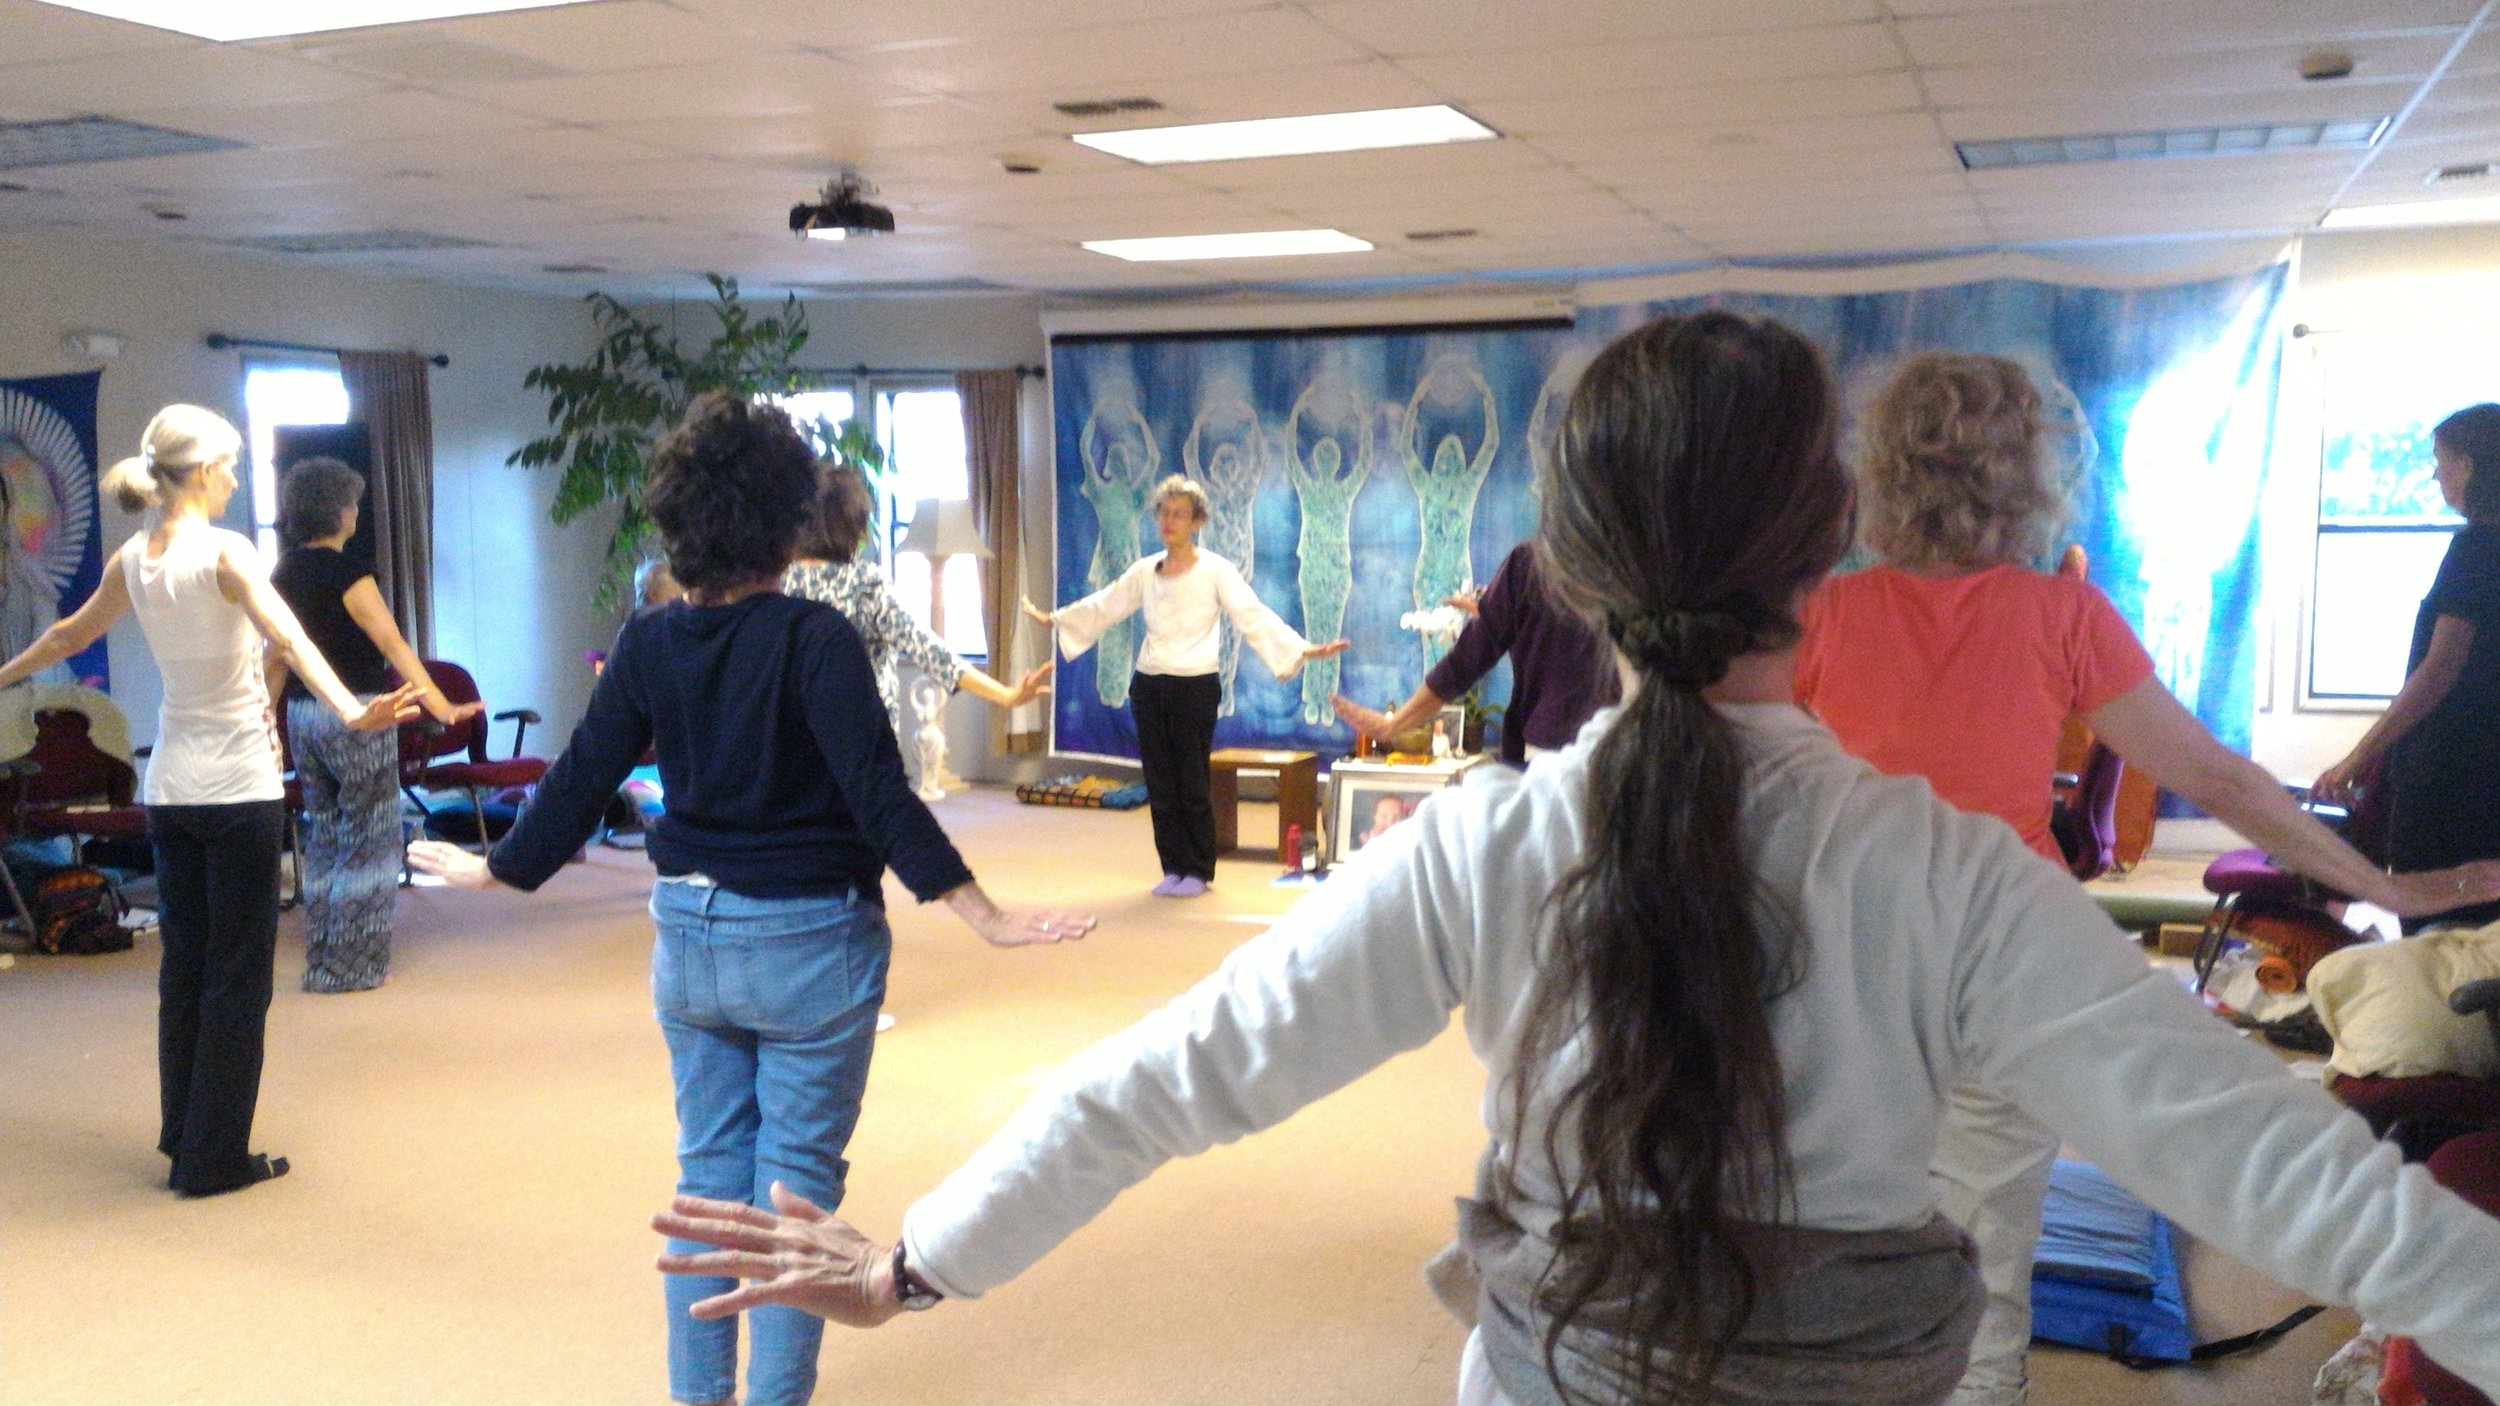 Denise leading a Morning Qigong Practice of Chen Chi at a Wisdom Healing Qigong Retreat at EarthRise IONS in Petaluma, CA.